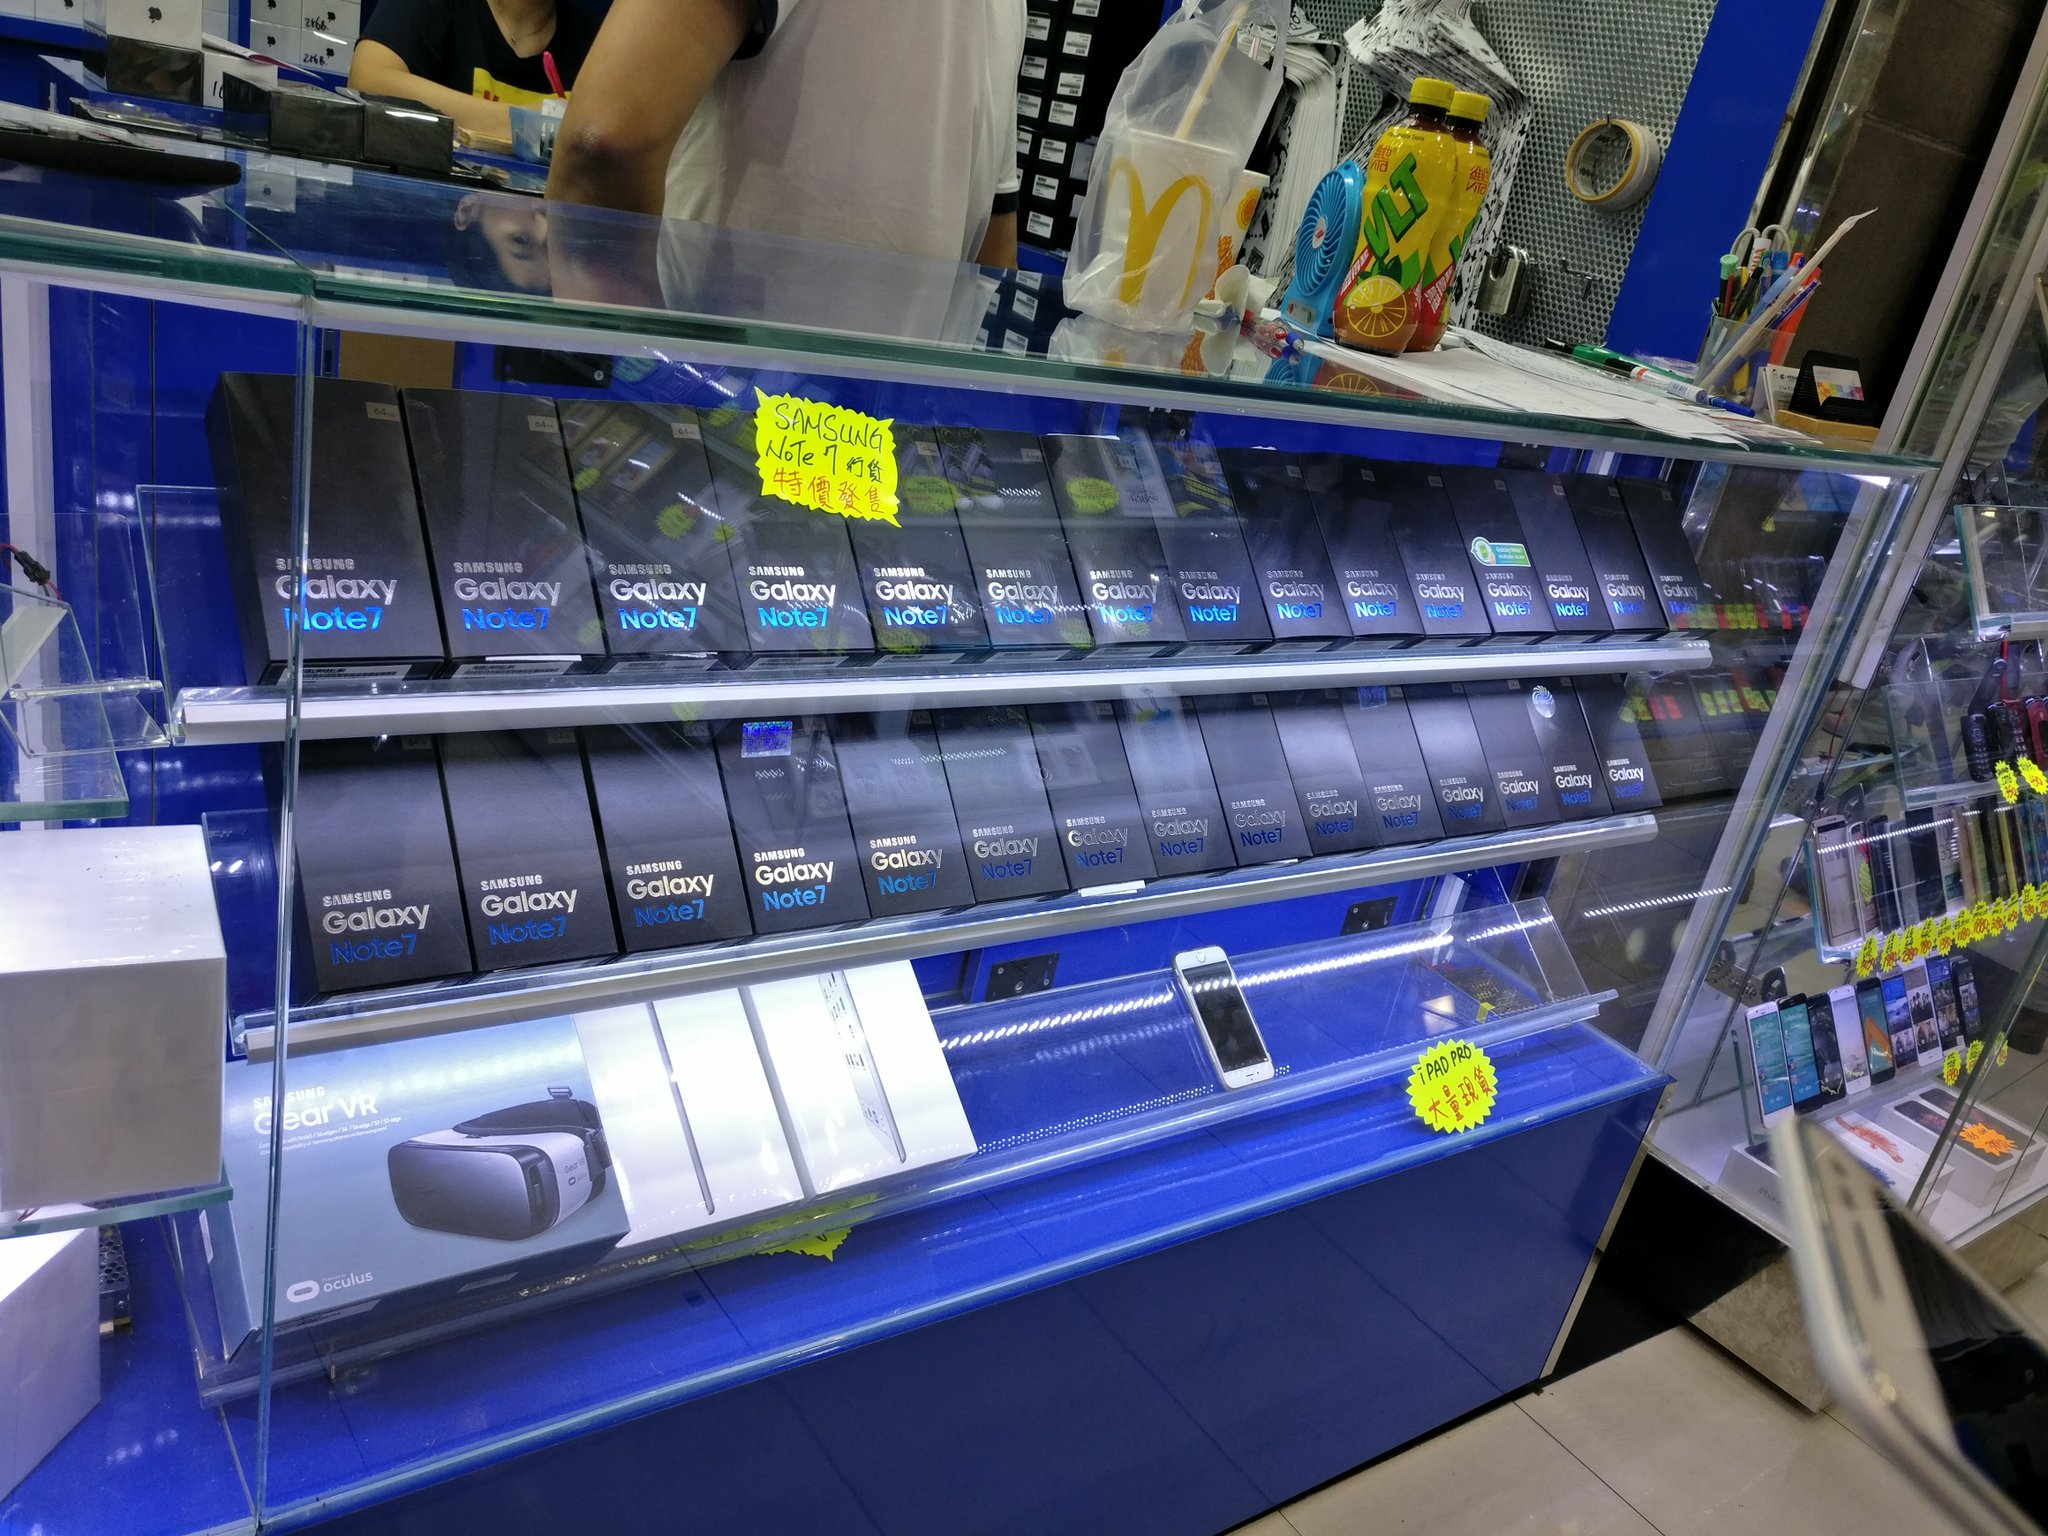 samsung-galaxy-note-7-vyklad-hong-kong